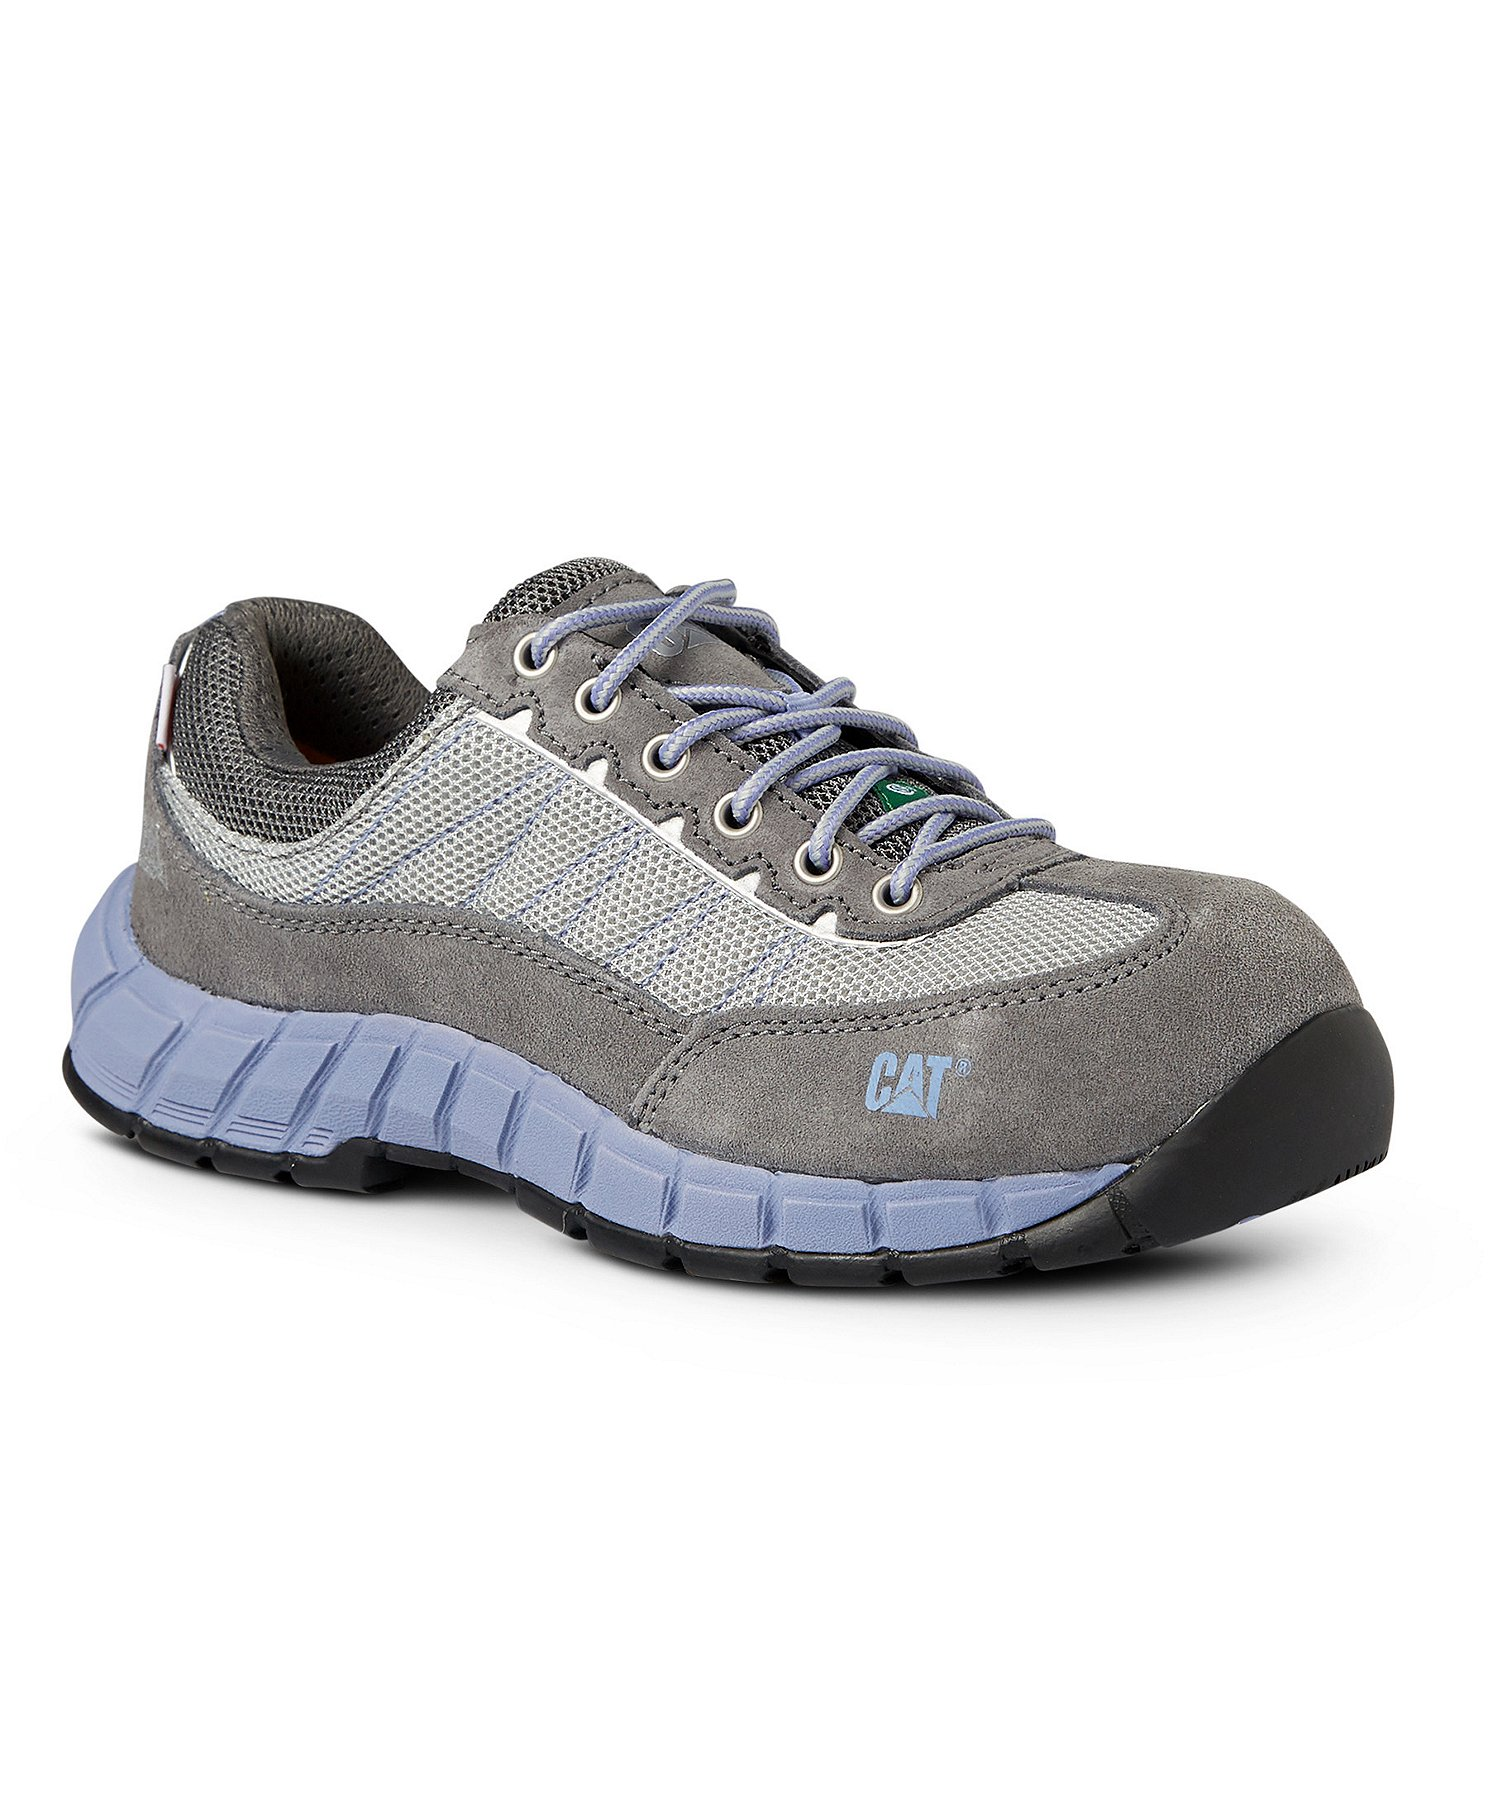 Women's Exact Steel Toe Composite Plate Athletic Safety Shoes | Mark's